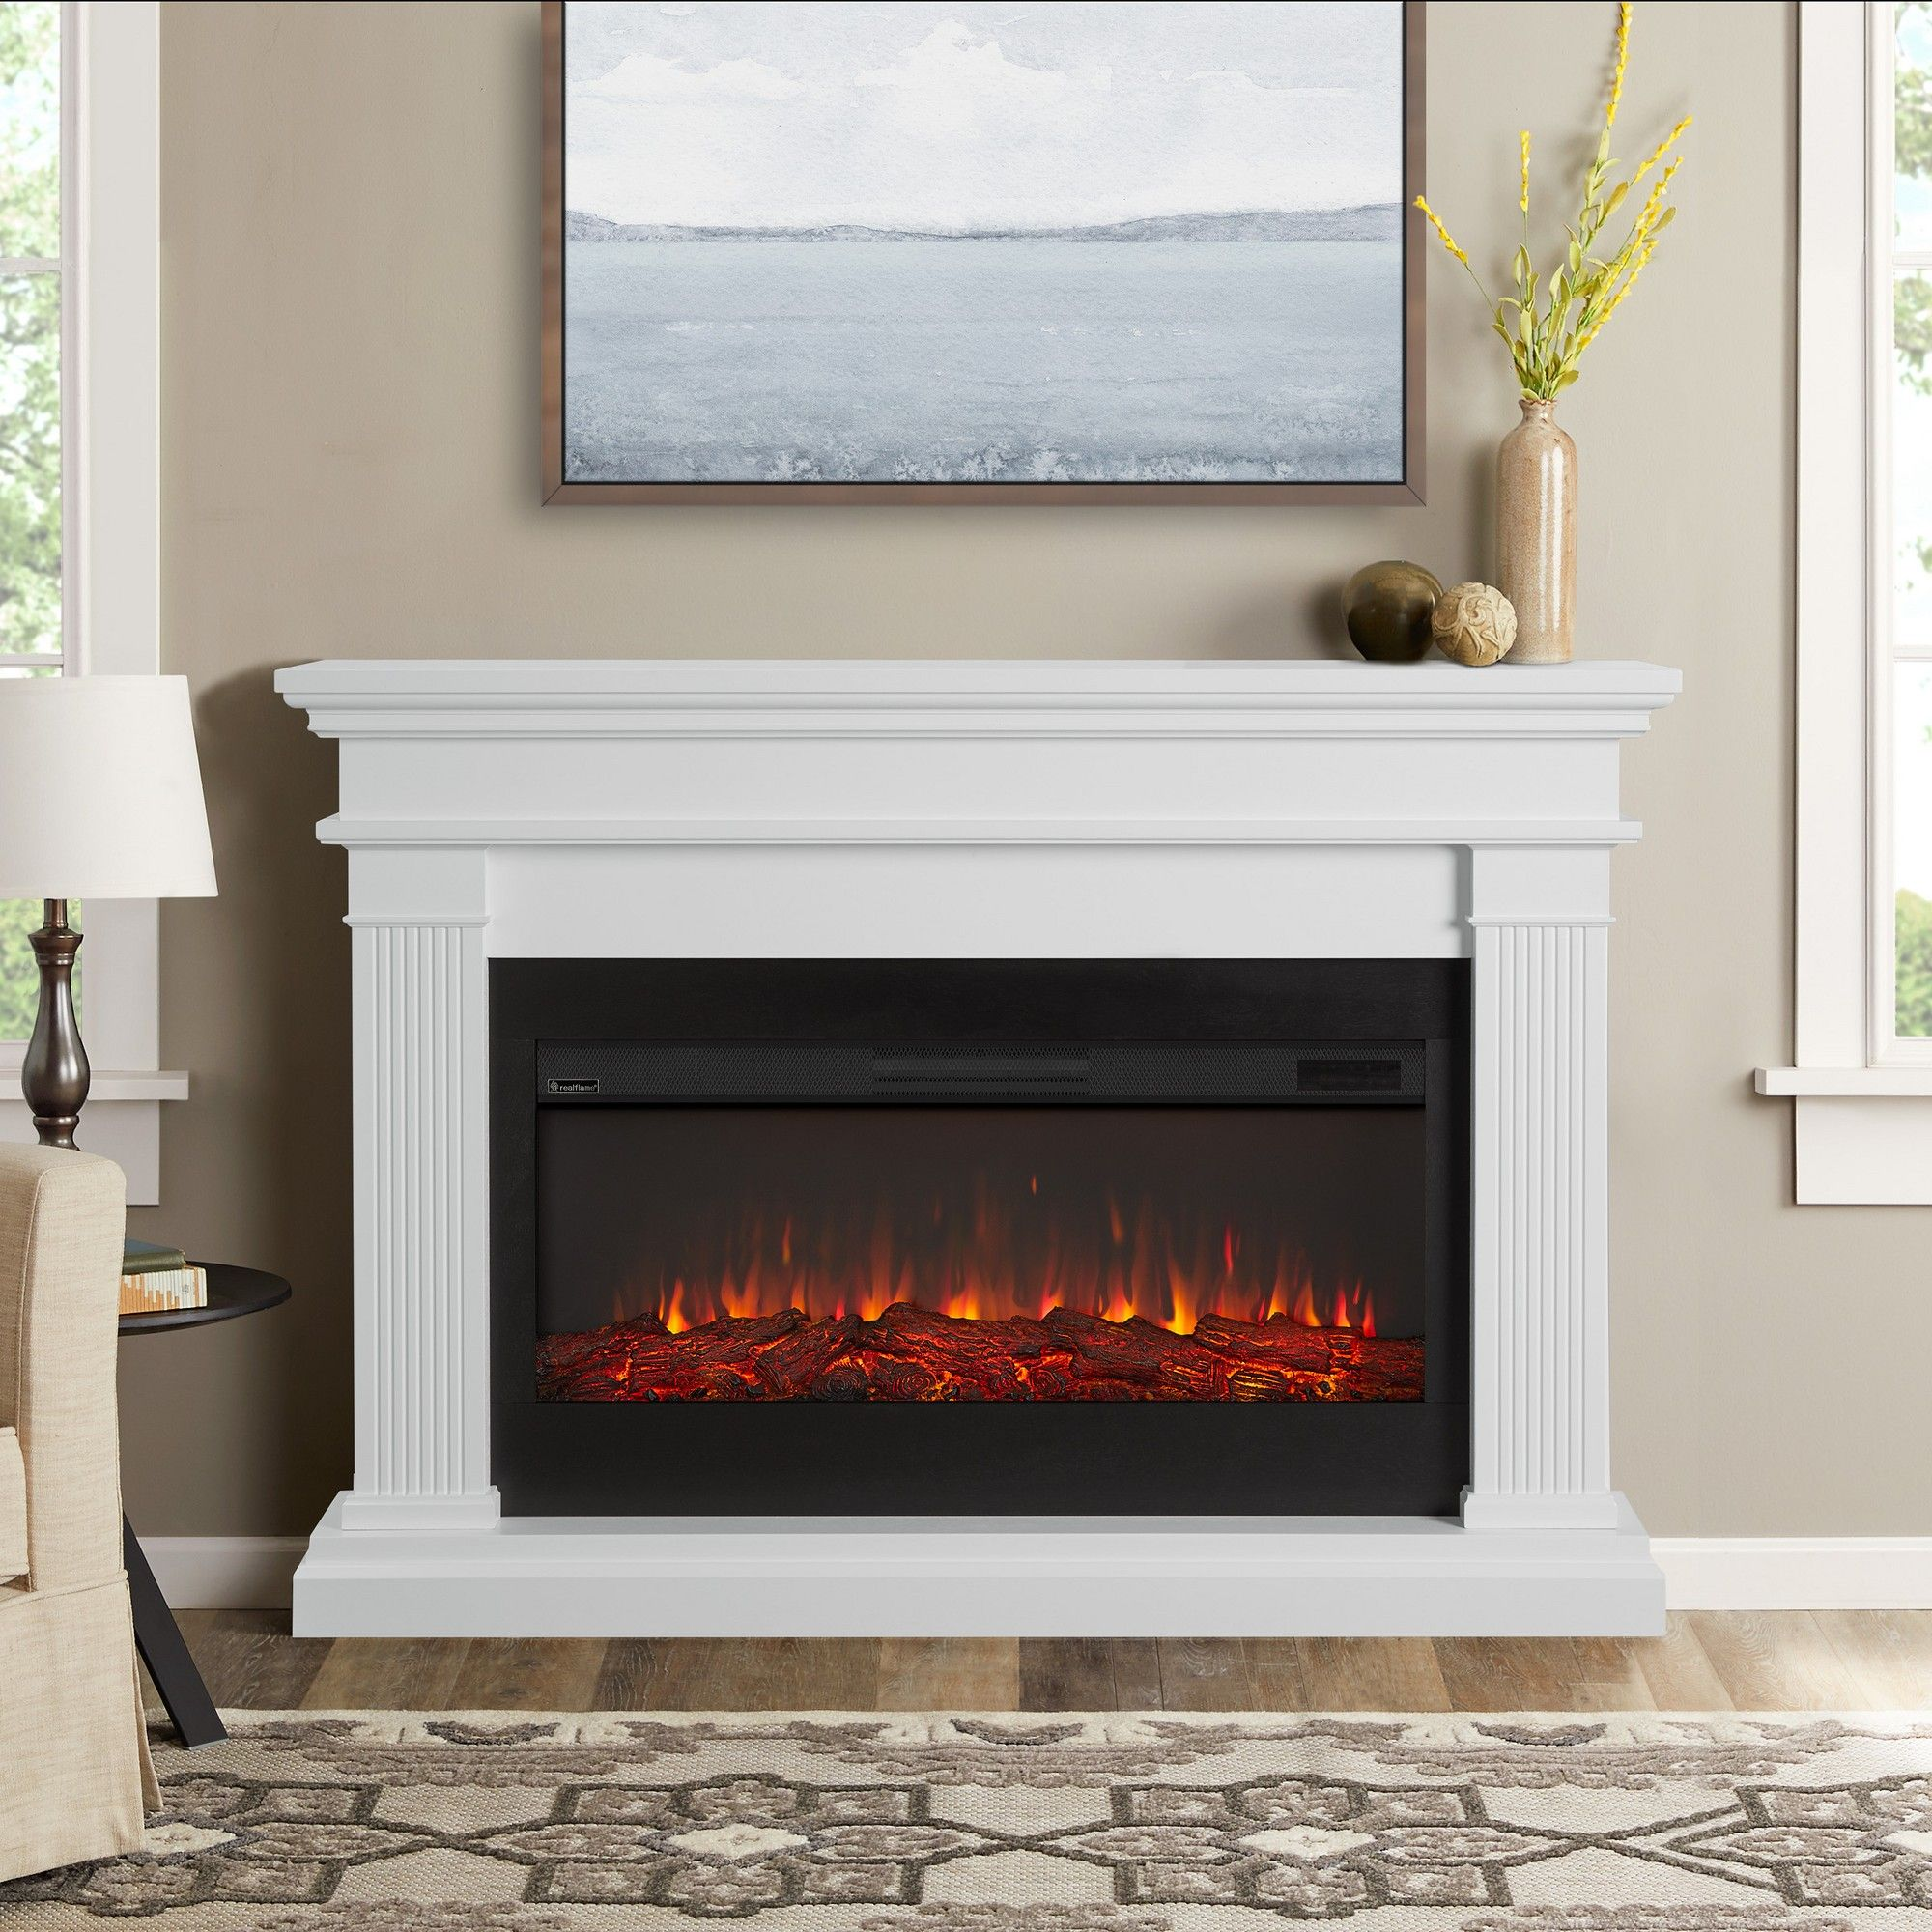 Real Flame Beau Electric Decorative Fireplace White White Electric Fireplace White Fireplace Electric Fireplace